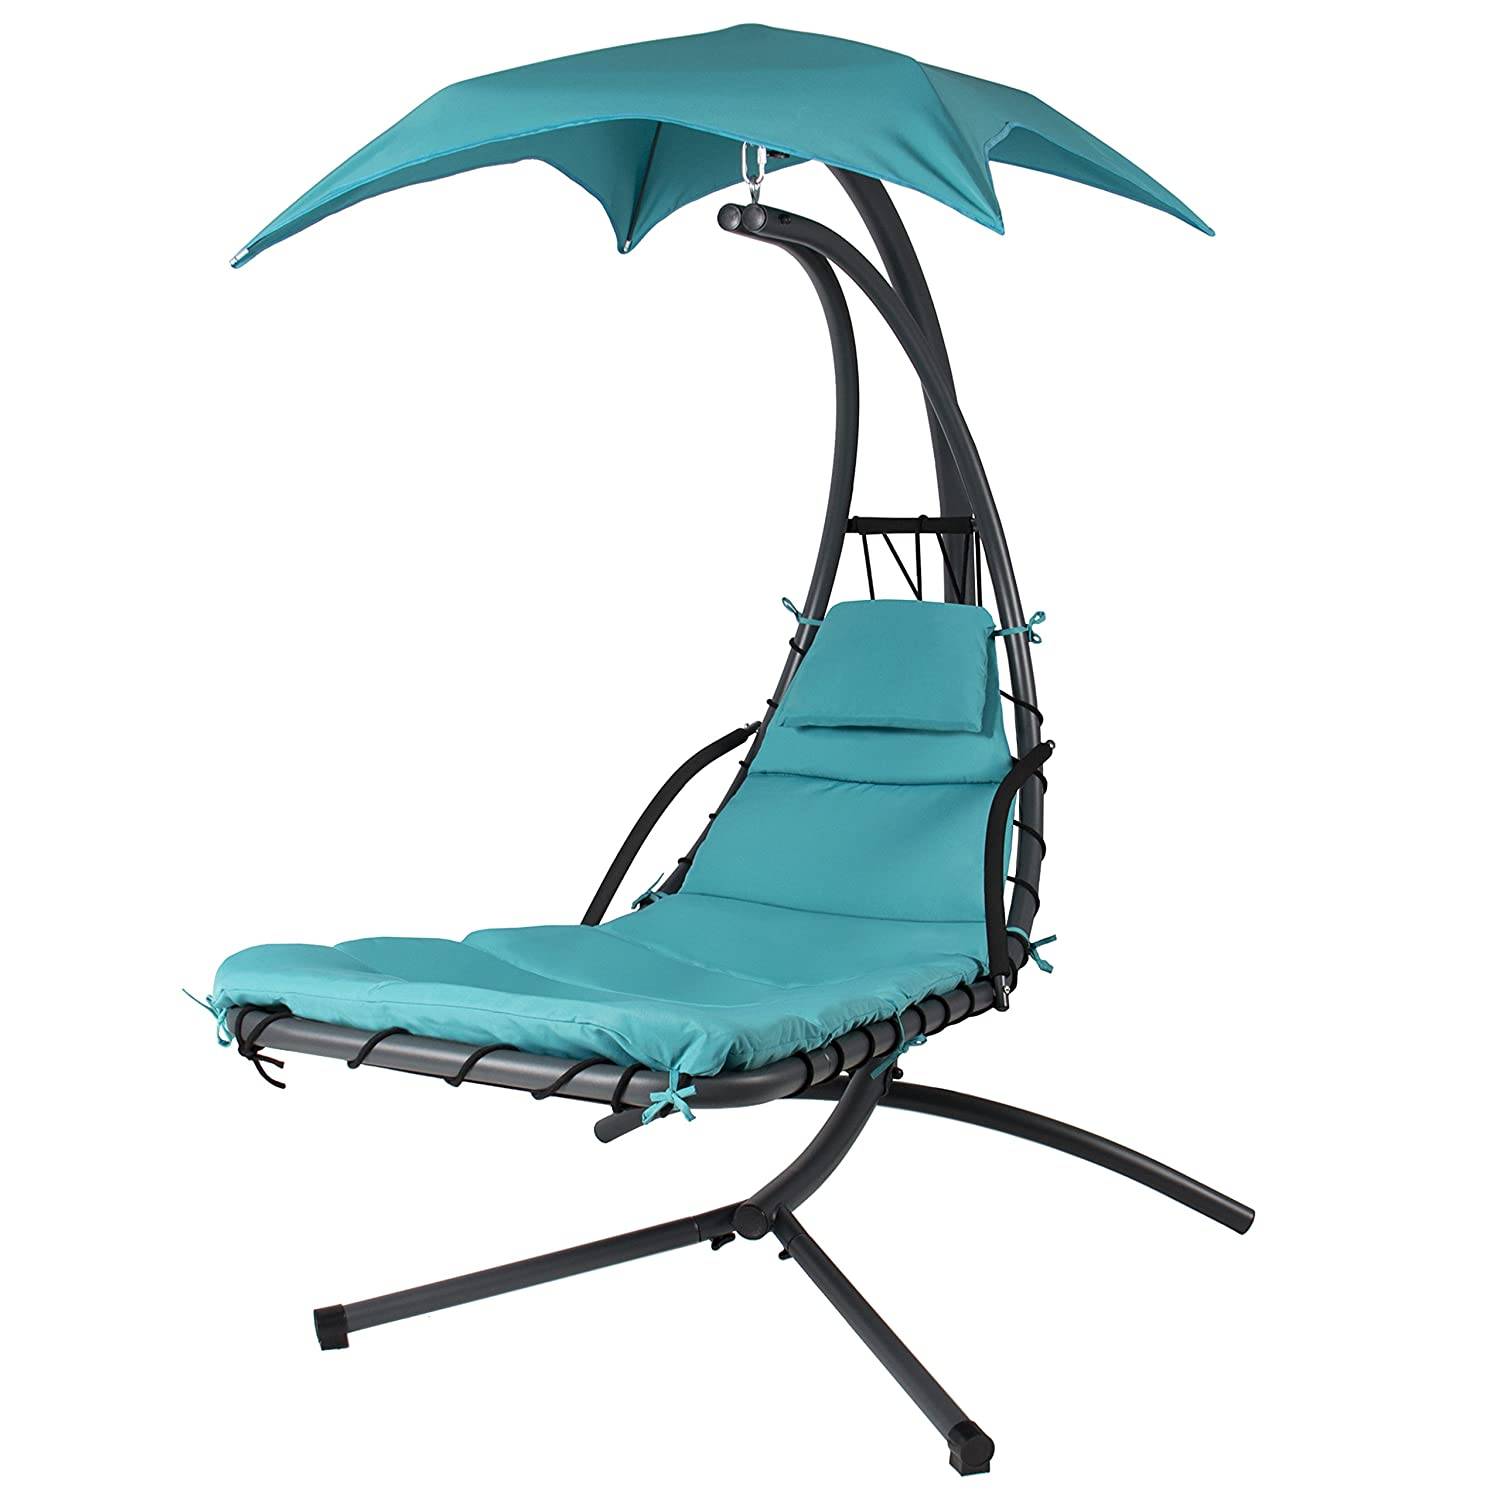 Canopy chair dimensions - Amazon Com Best Choice Products Hanging Chaise Lounger Chair Arc Stand Air Porch Swing Hammock Chair Canopy Teal Patio Lawn Garden